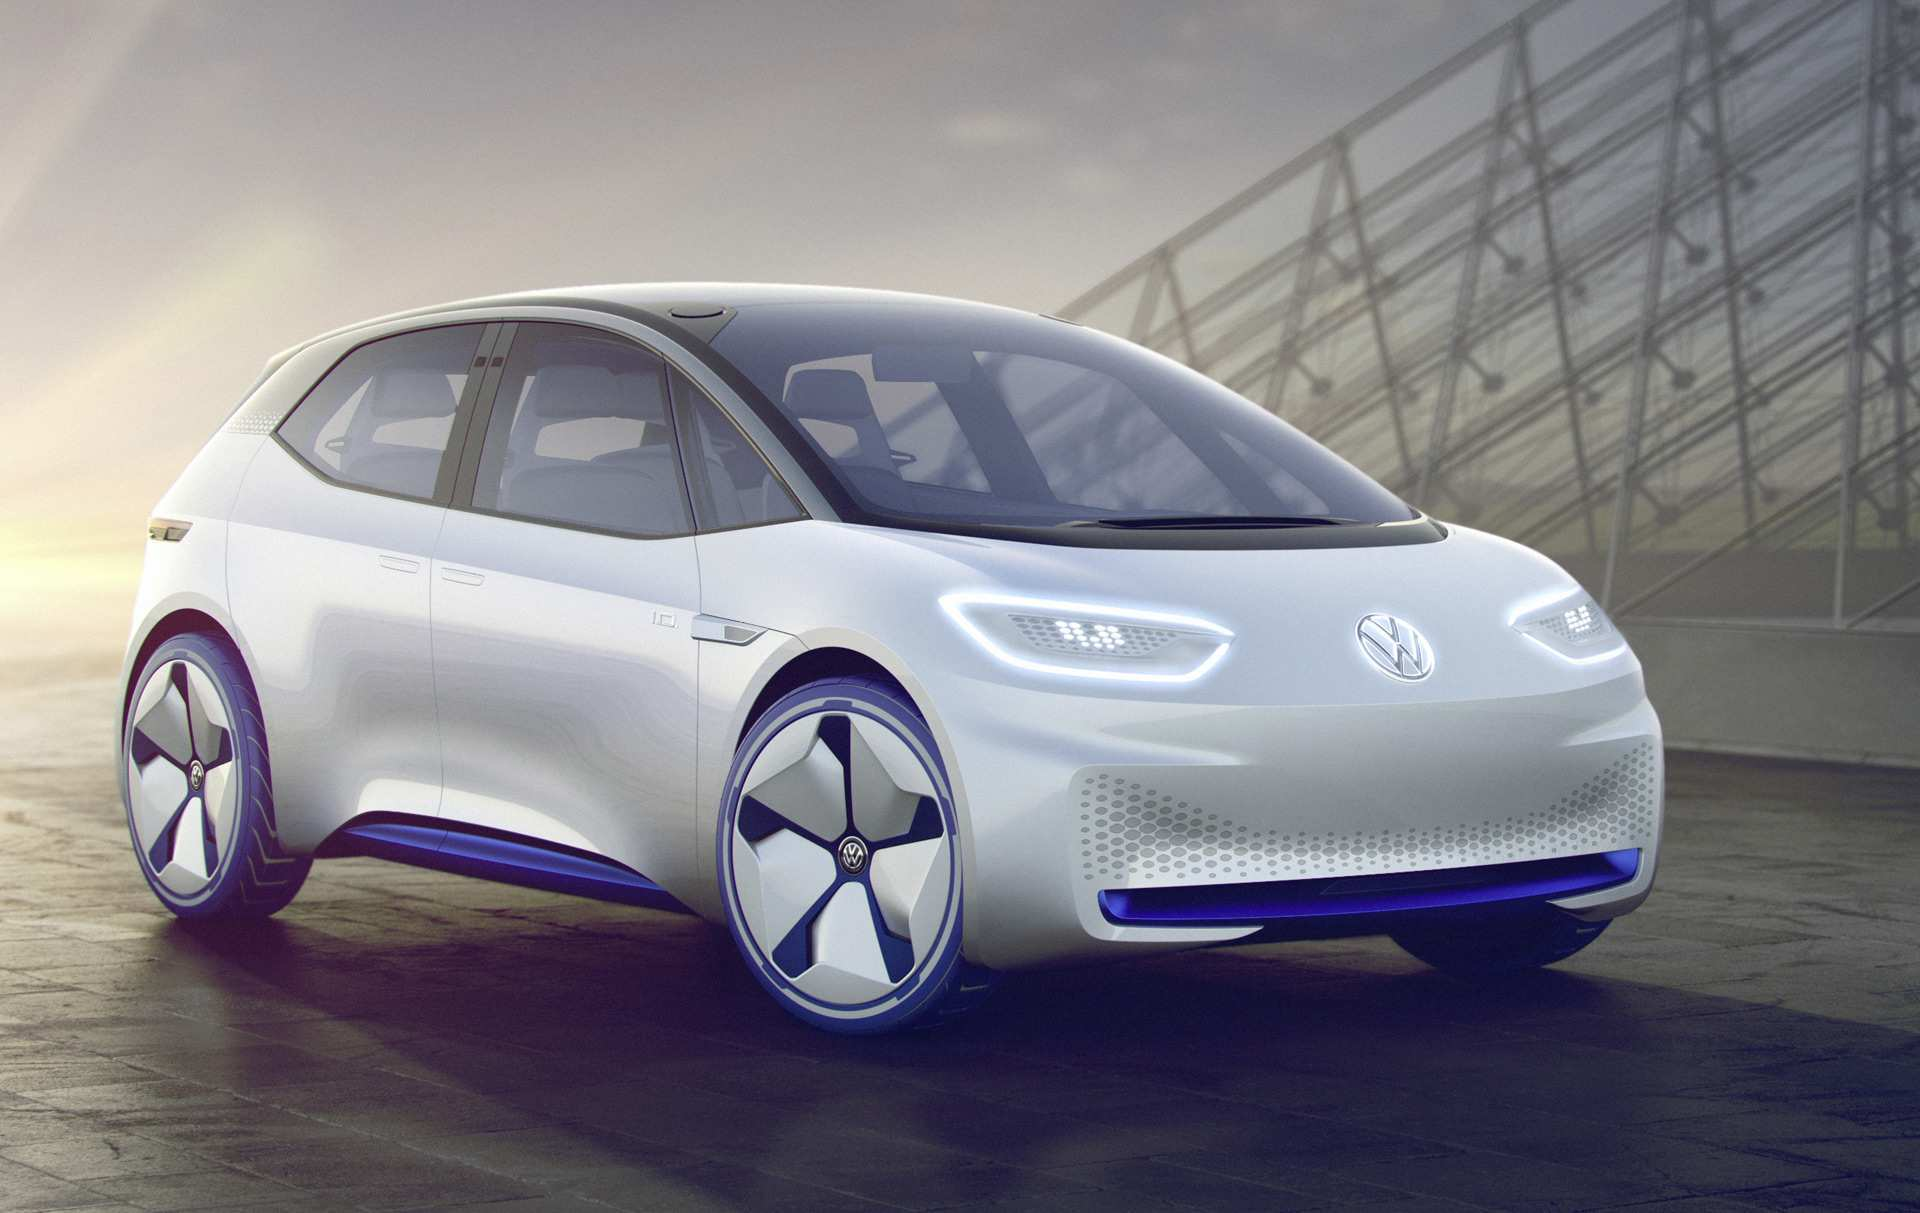 55 Gallery of Volkswagen Cars 2020 Review with Volkswagen Cars 2020